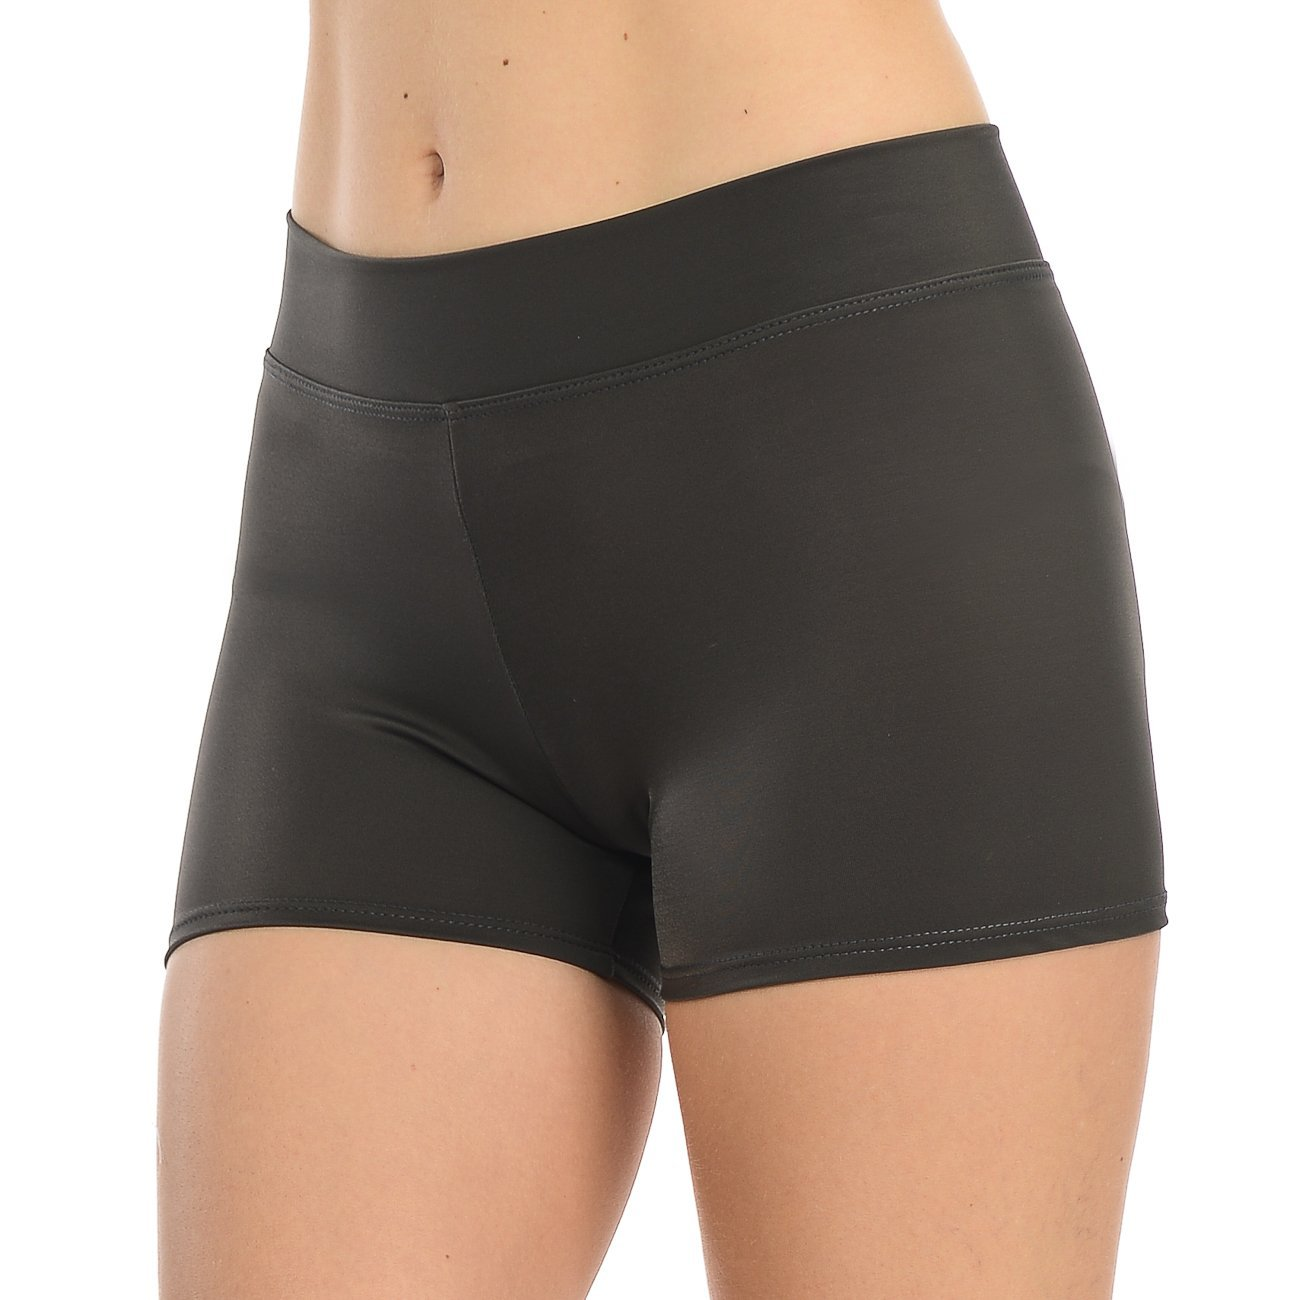 ANZA Girls Active Wear Dance Booty Shorts-Charcoal,Large(12/14)